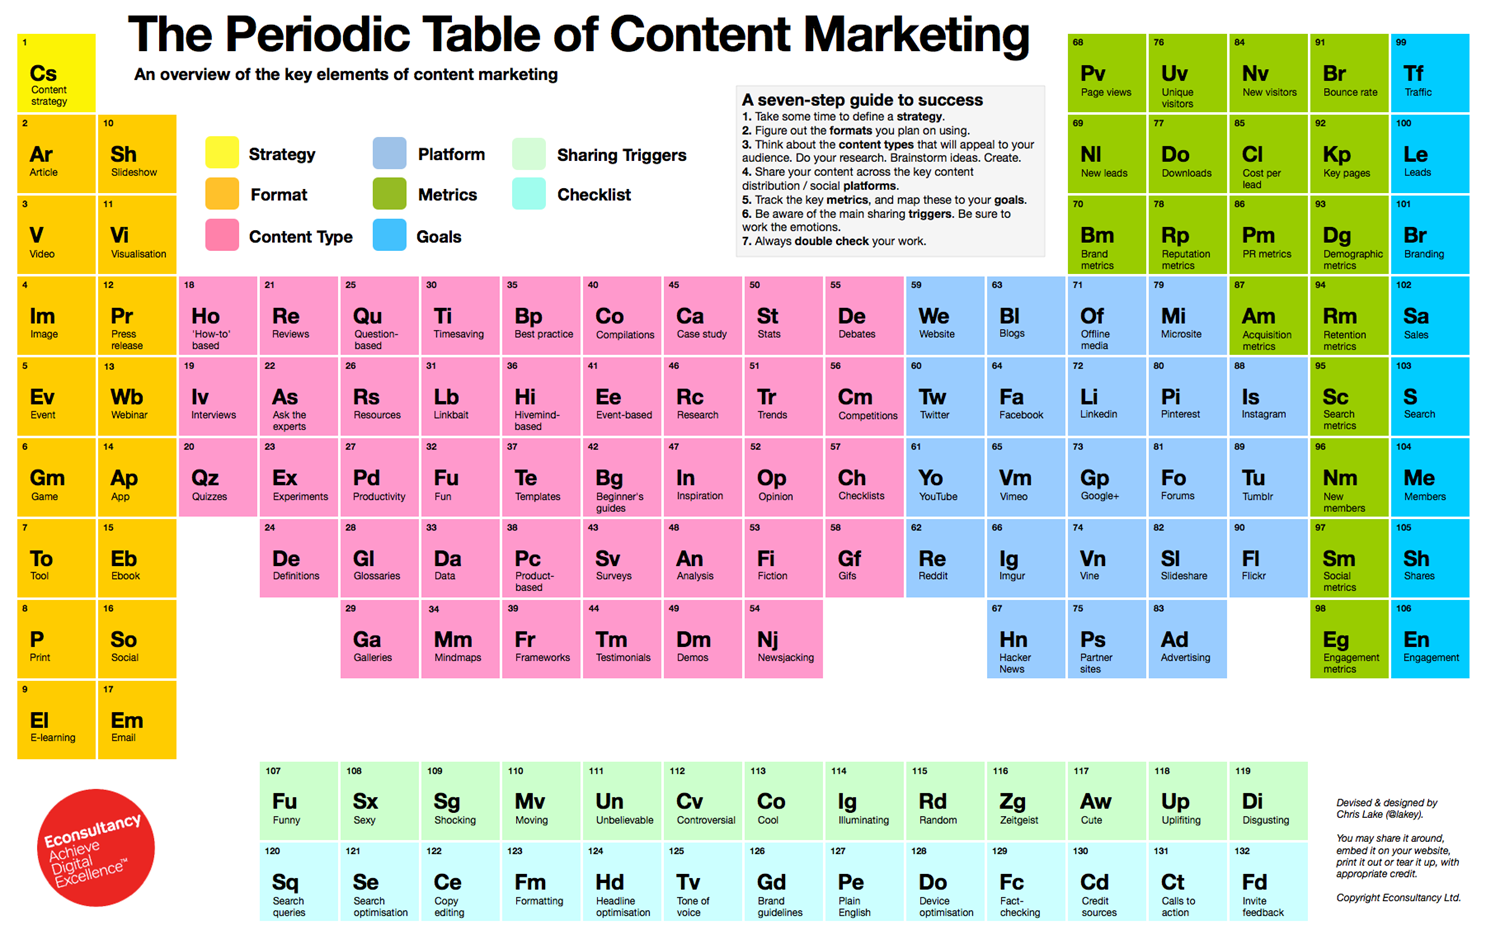 Periodic Table of Content Marketing.png